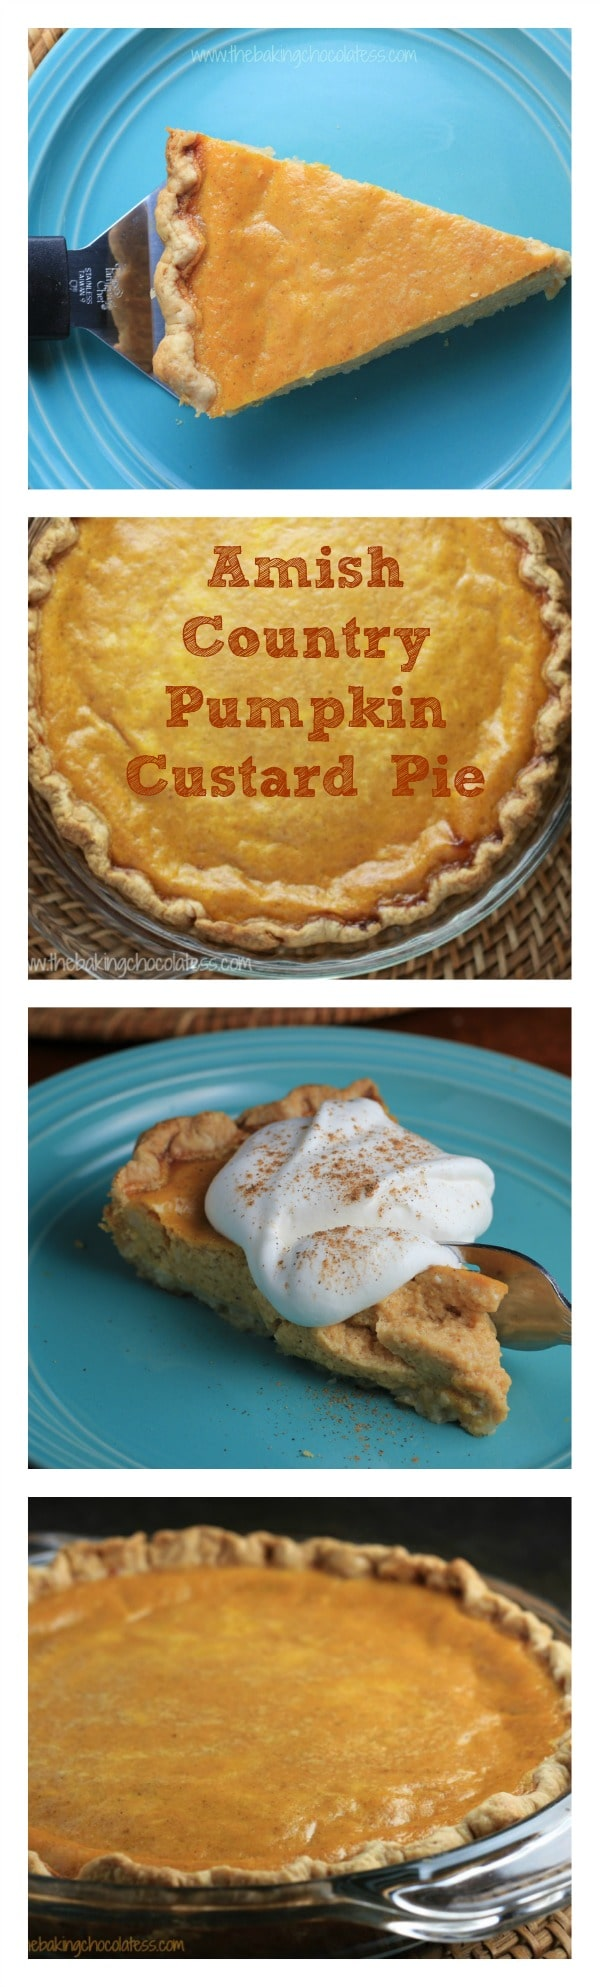 Amish Country Pumpkin Custard Pie #pie #custard #pumpkin #amish